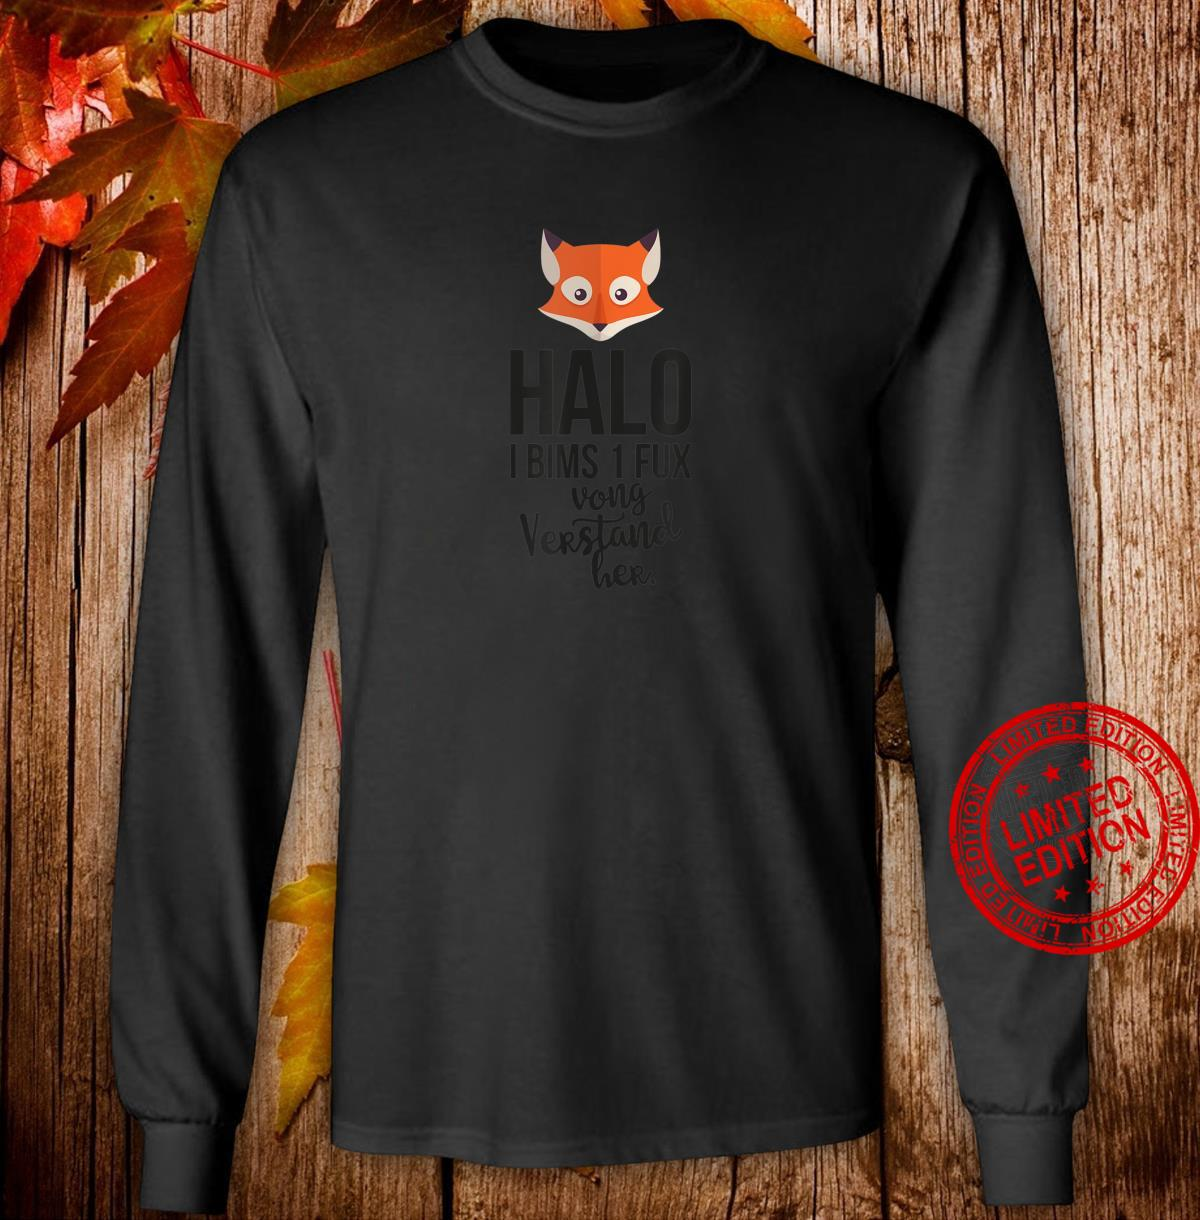 Halo I bims 1 Fux vong Verstand her Lustiges Fun Party Shirt long sleeved